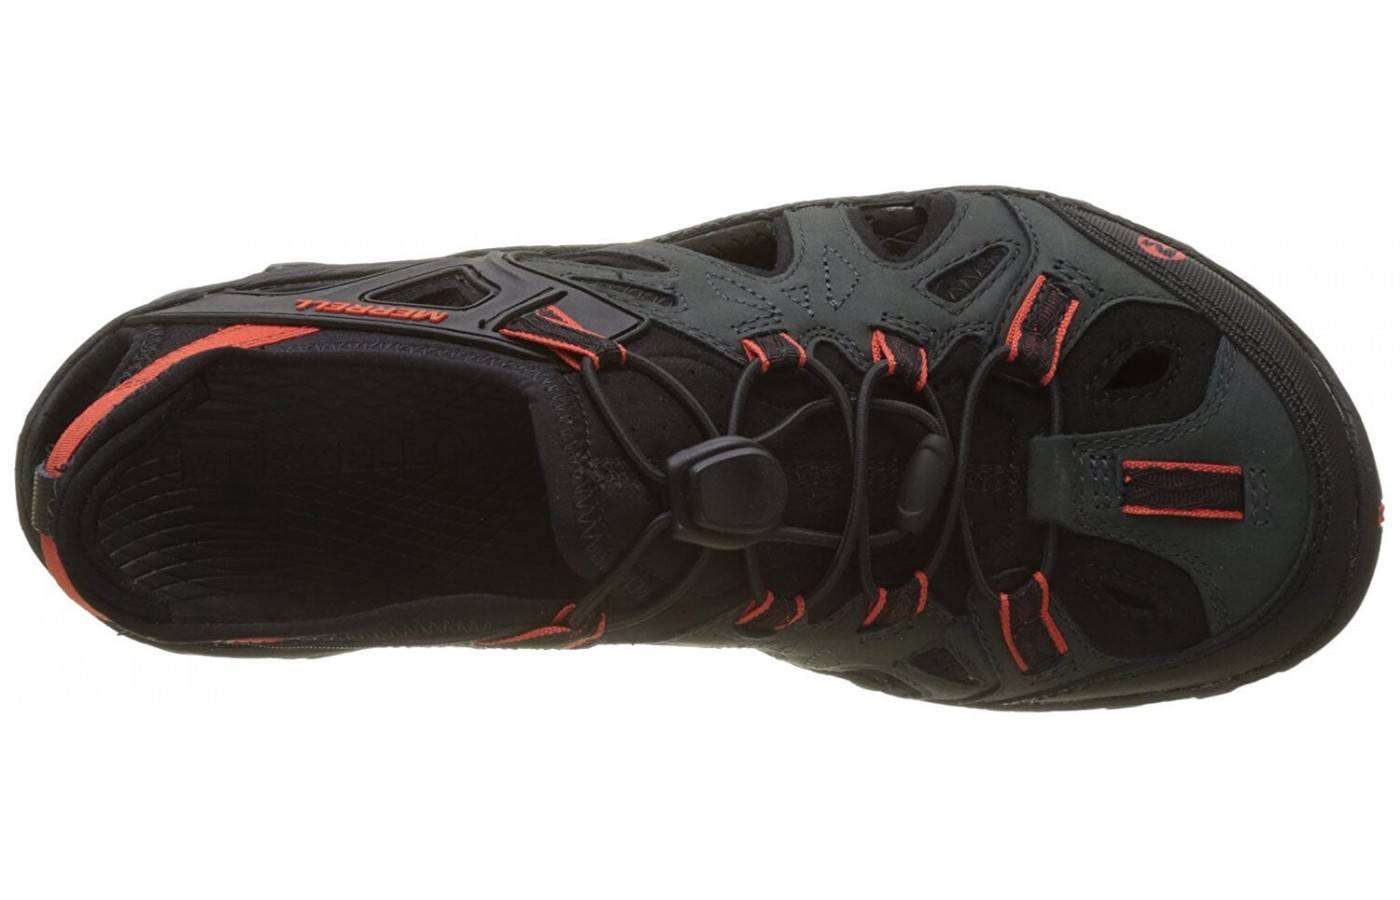 The Merrell All Out Blaze Sieve has a quick-drying Neoprene interior to help get rid of excess water that's made its way into the shoe.